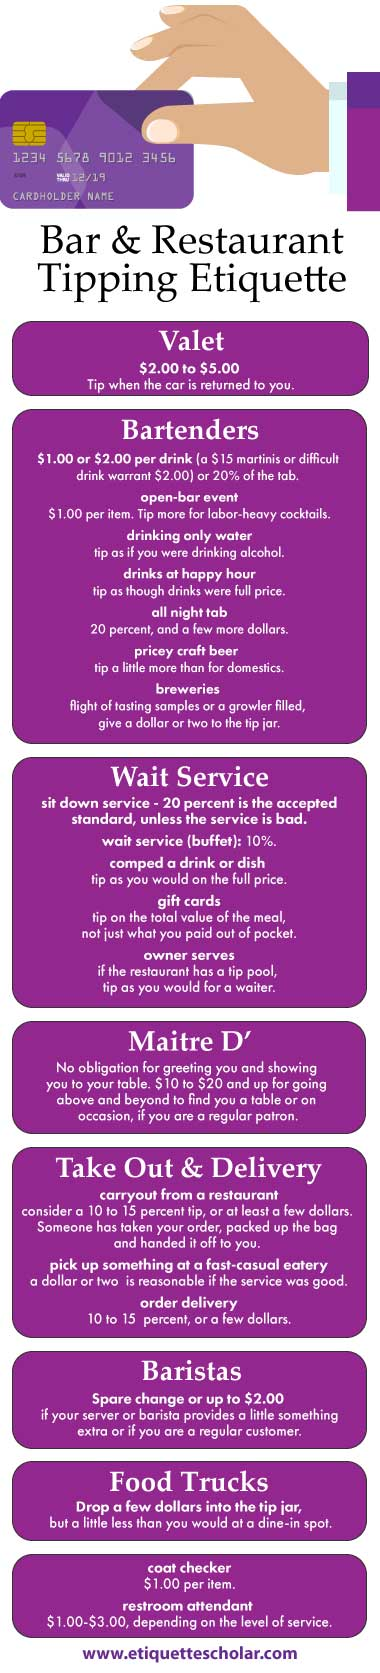 Restaurant and Bar Tipping Guidelines